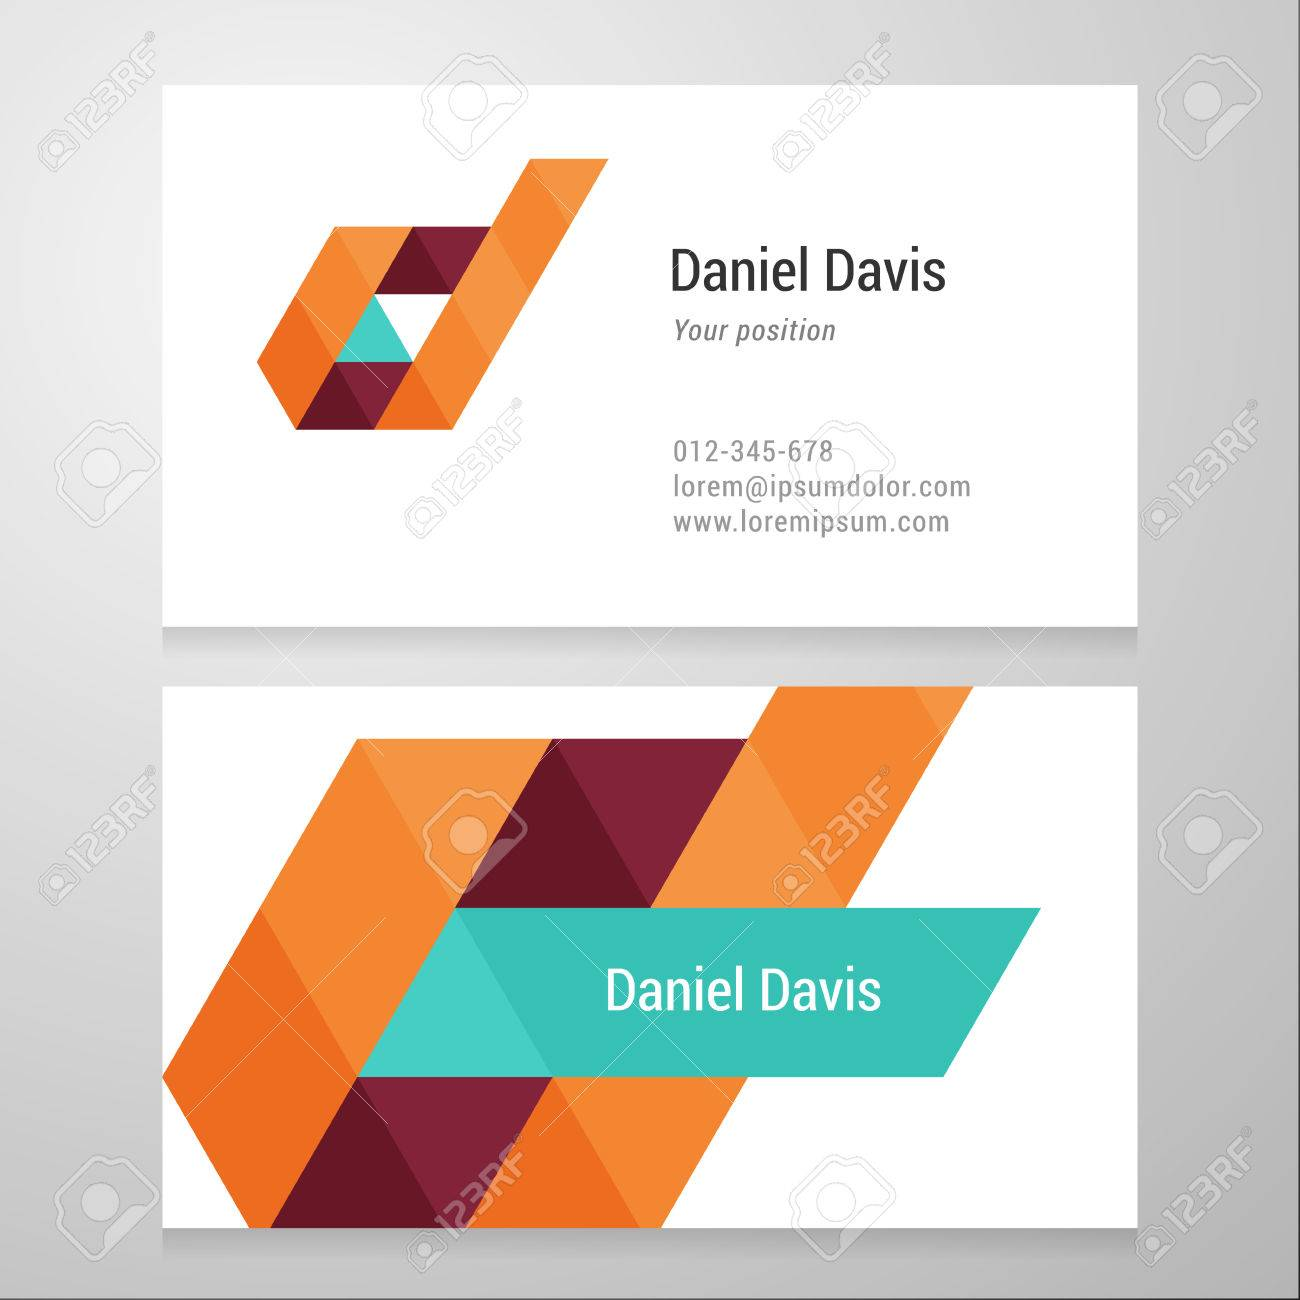 Modern letter d business card template vector design layered modern letter d business card template vector design layered editable stock vector reheart Choice Image